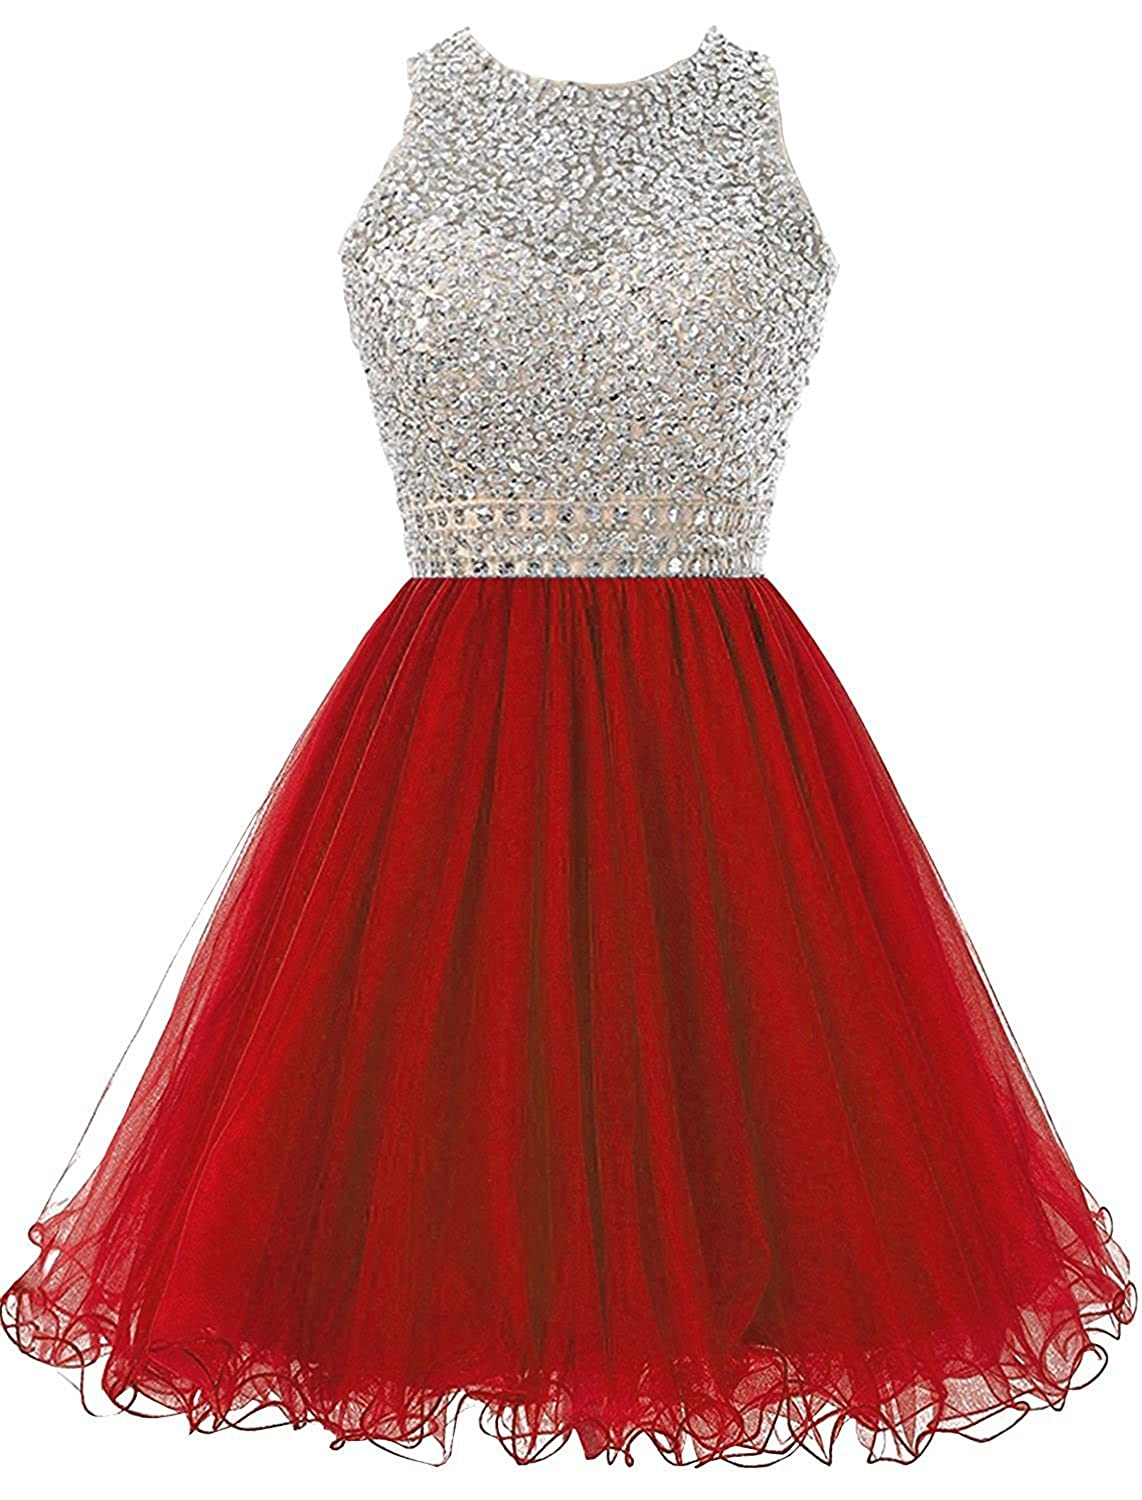 Dannifore Beaded Homecoming Dresses for Juniors Sequins Tulle Short Prom Dress